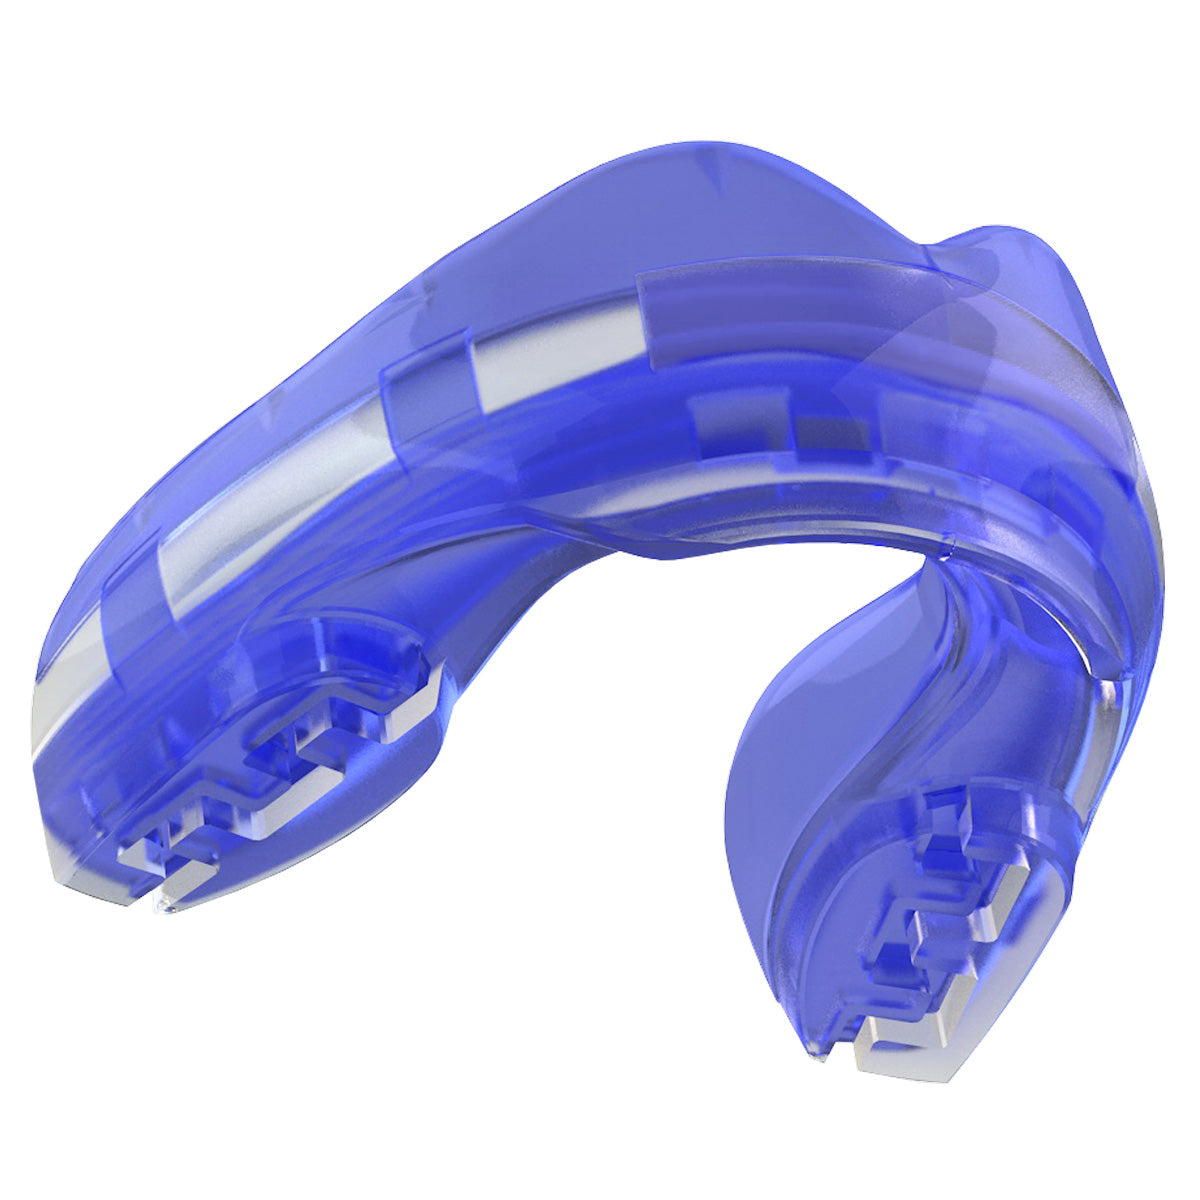 SAFEJAWZ® Ortho Series Self-Fit Mouthguard for Braces - Ice Blue - SAFEJAWZ gum shield